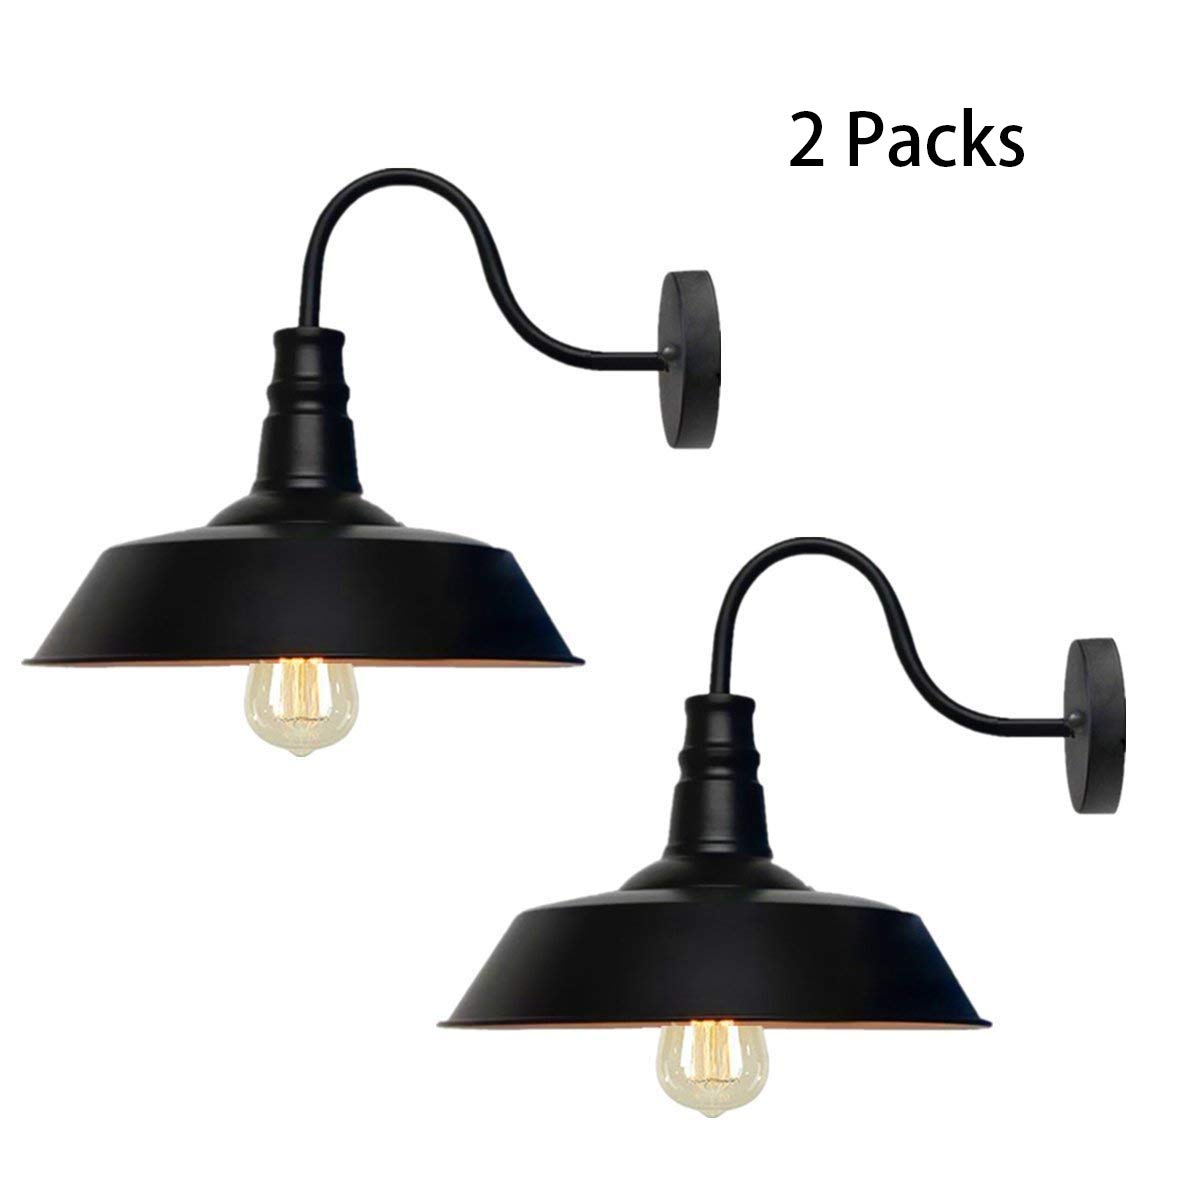 Alltrust Retro Black Wall Sconce Lighting Gooseneck Barn Lights Industrial Vintage Farmhouse Wall Lamp Led Porch Light for Indoor Bathroom (2 Packs)